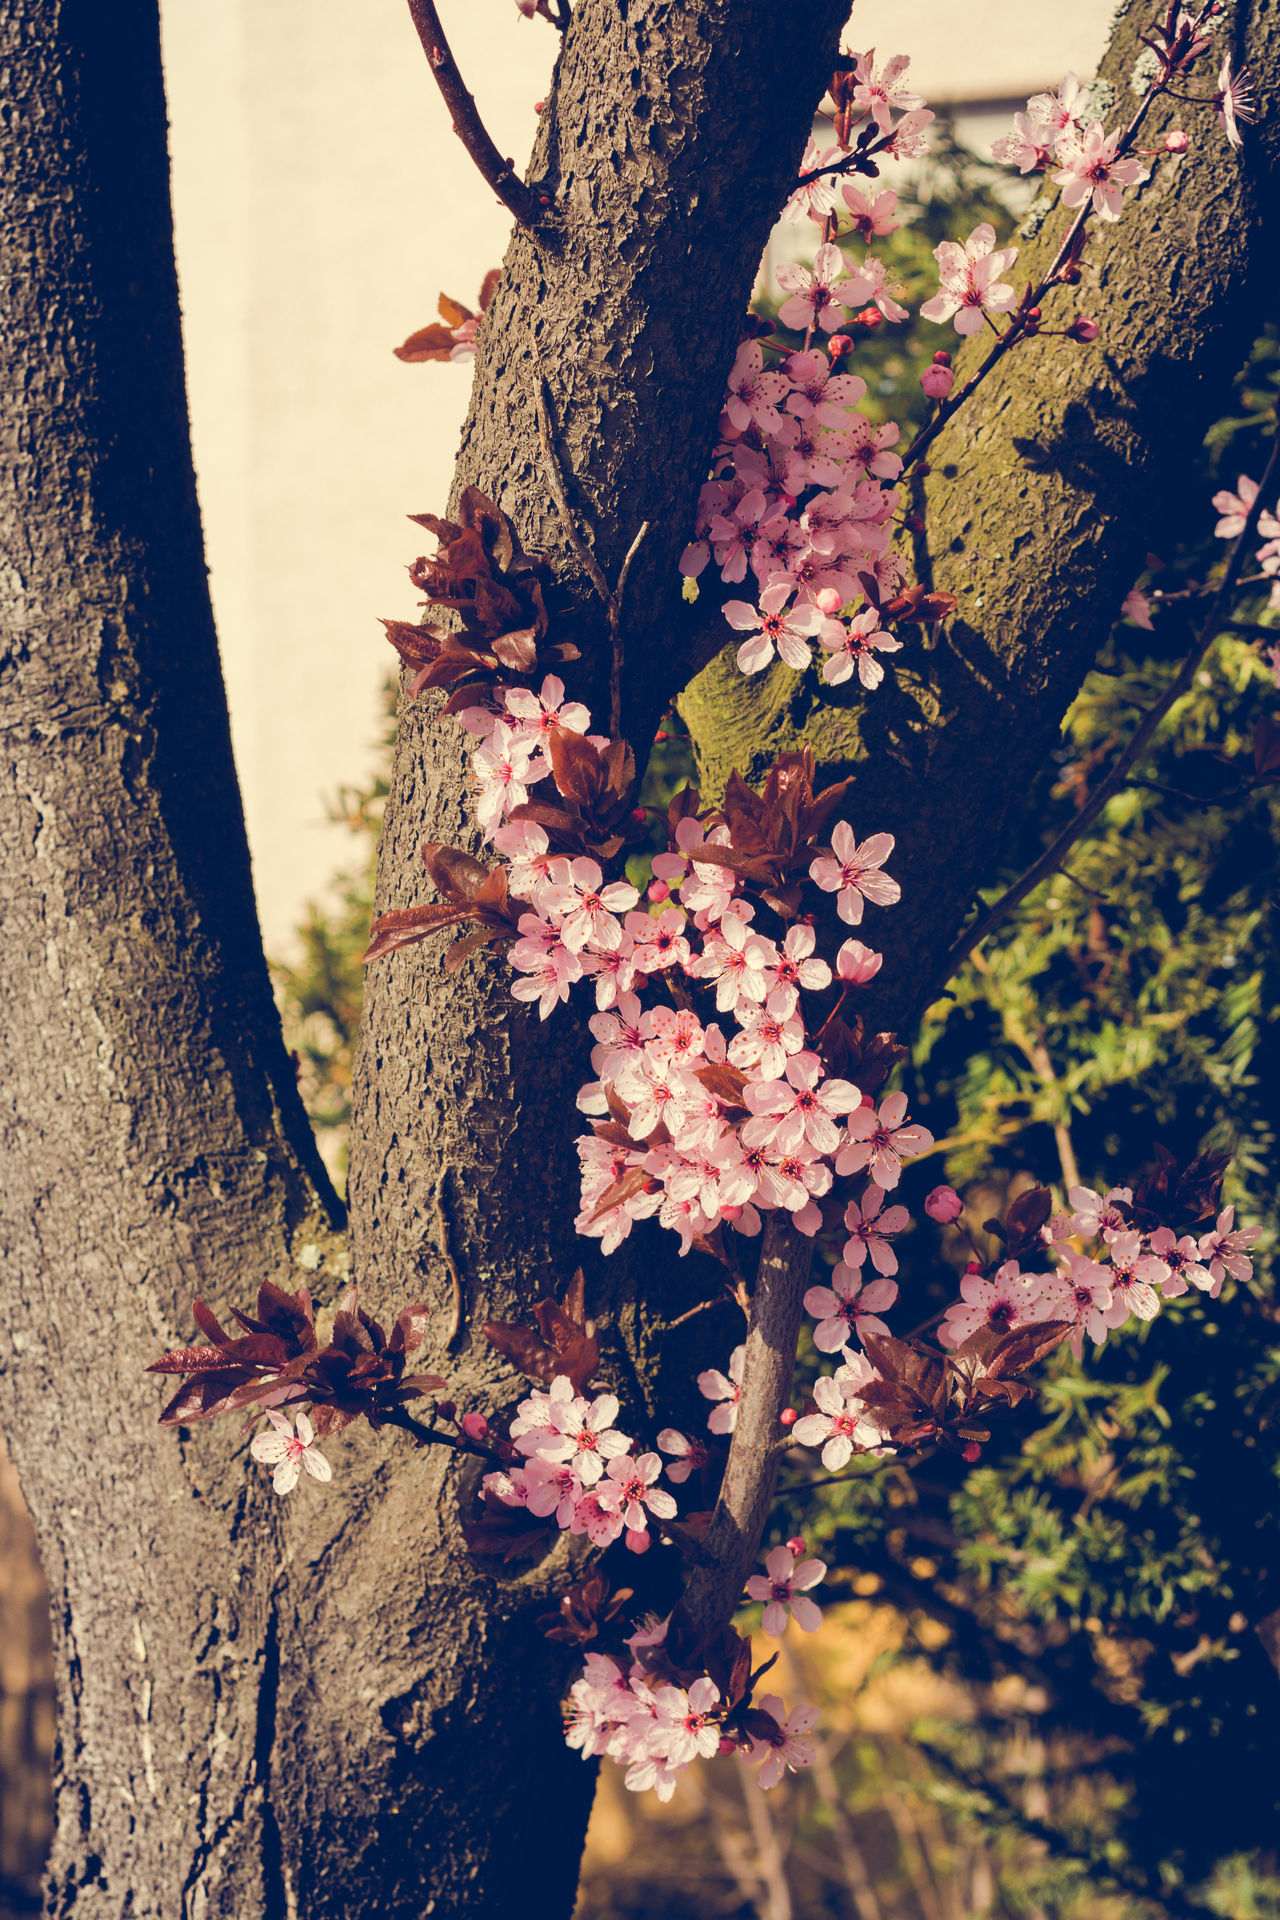 Cherry Blossoms Animal Themes Be Happy Beauty In Nature Blossom Branch Cherry Blossoms Close-up Day Flower Fragility Freshness Garden Growth Kirschblüte Nature No People Outdoors Plant Sky Springtime Tree Wonder Of Nature